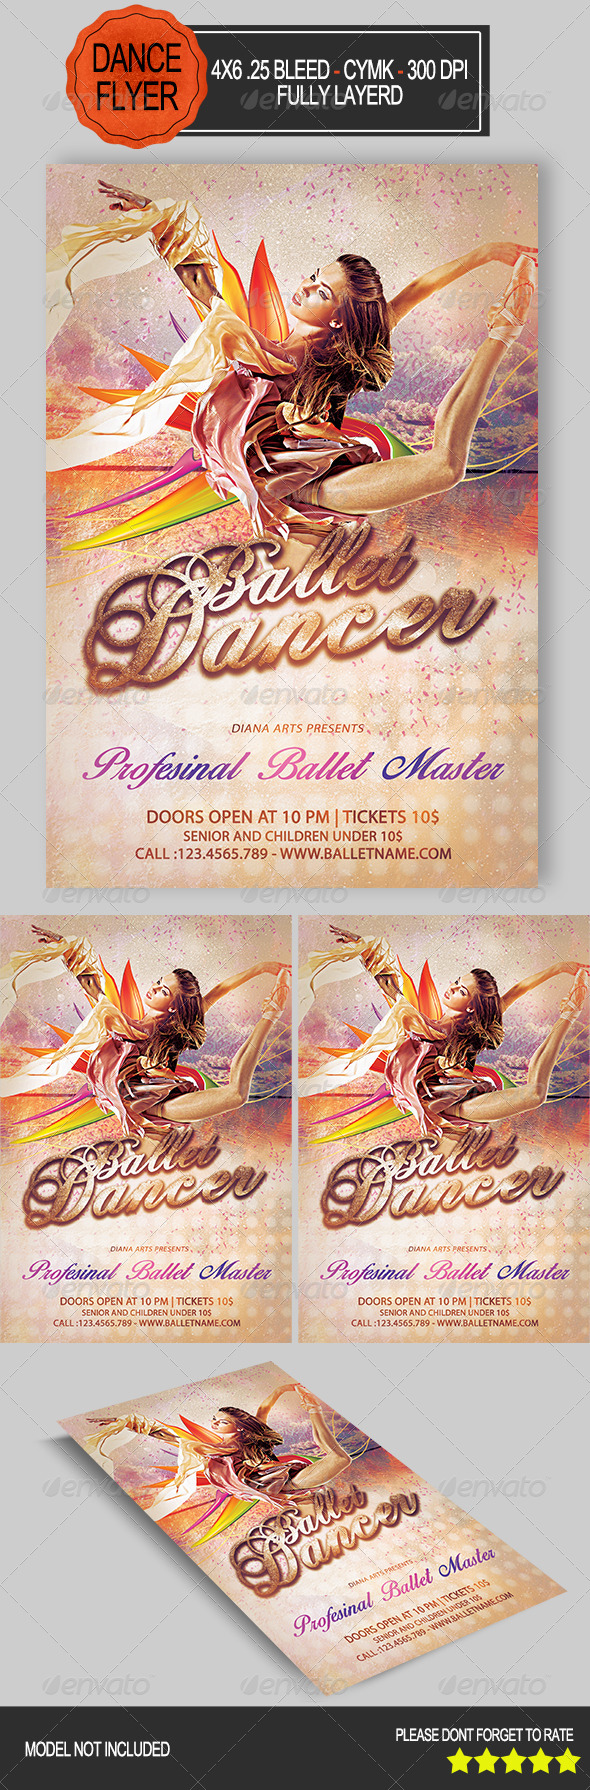 GraphicRiver Ballet Dancer Flyer 8489418